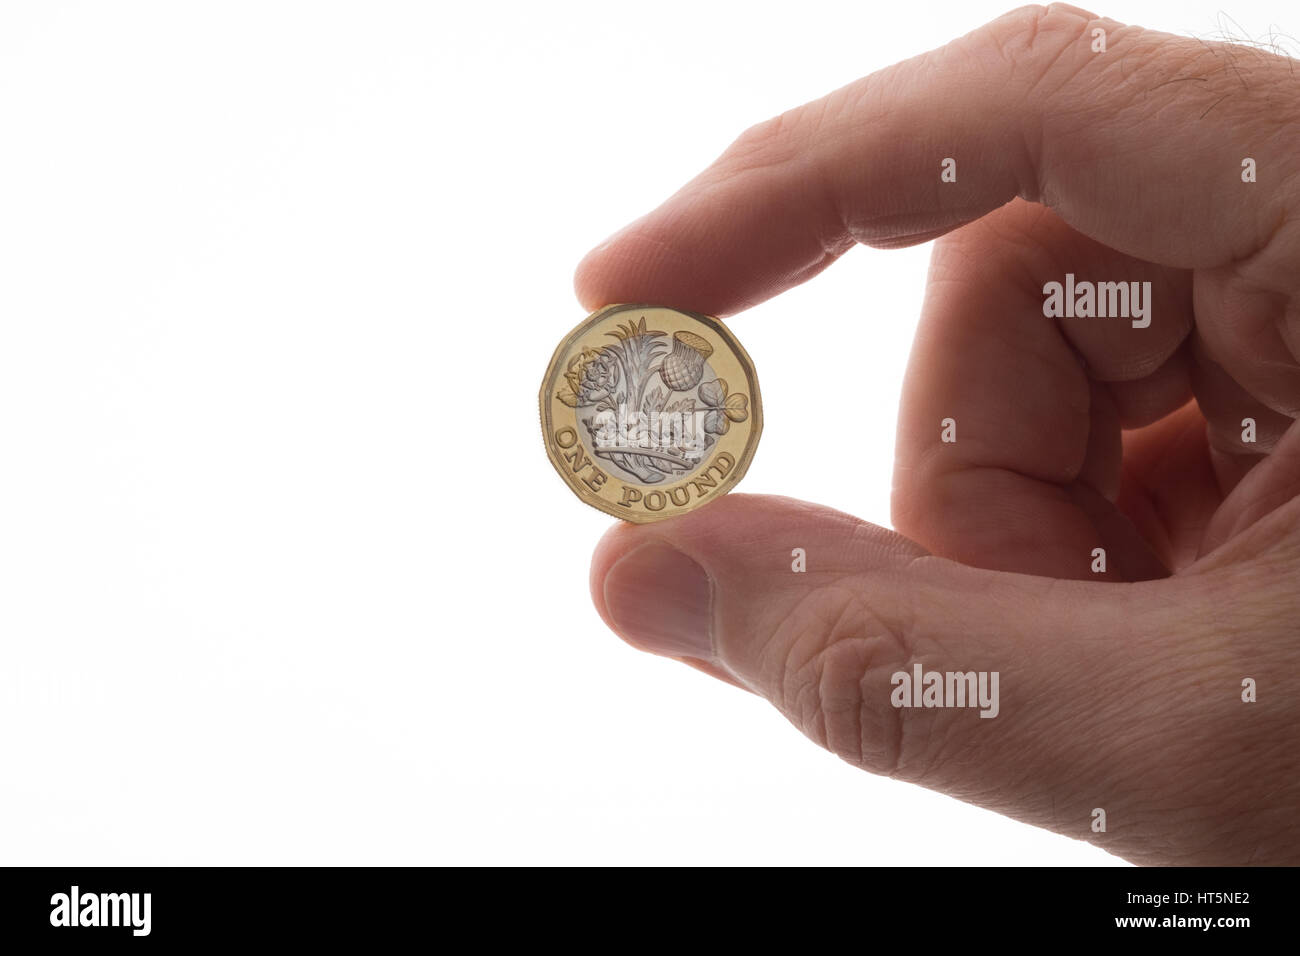 New design pound coin, the twelve sided design introduced in 2017 - Stock Image